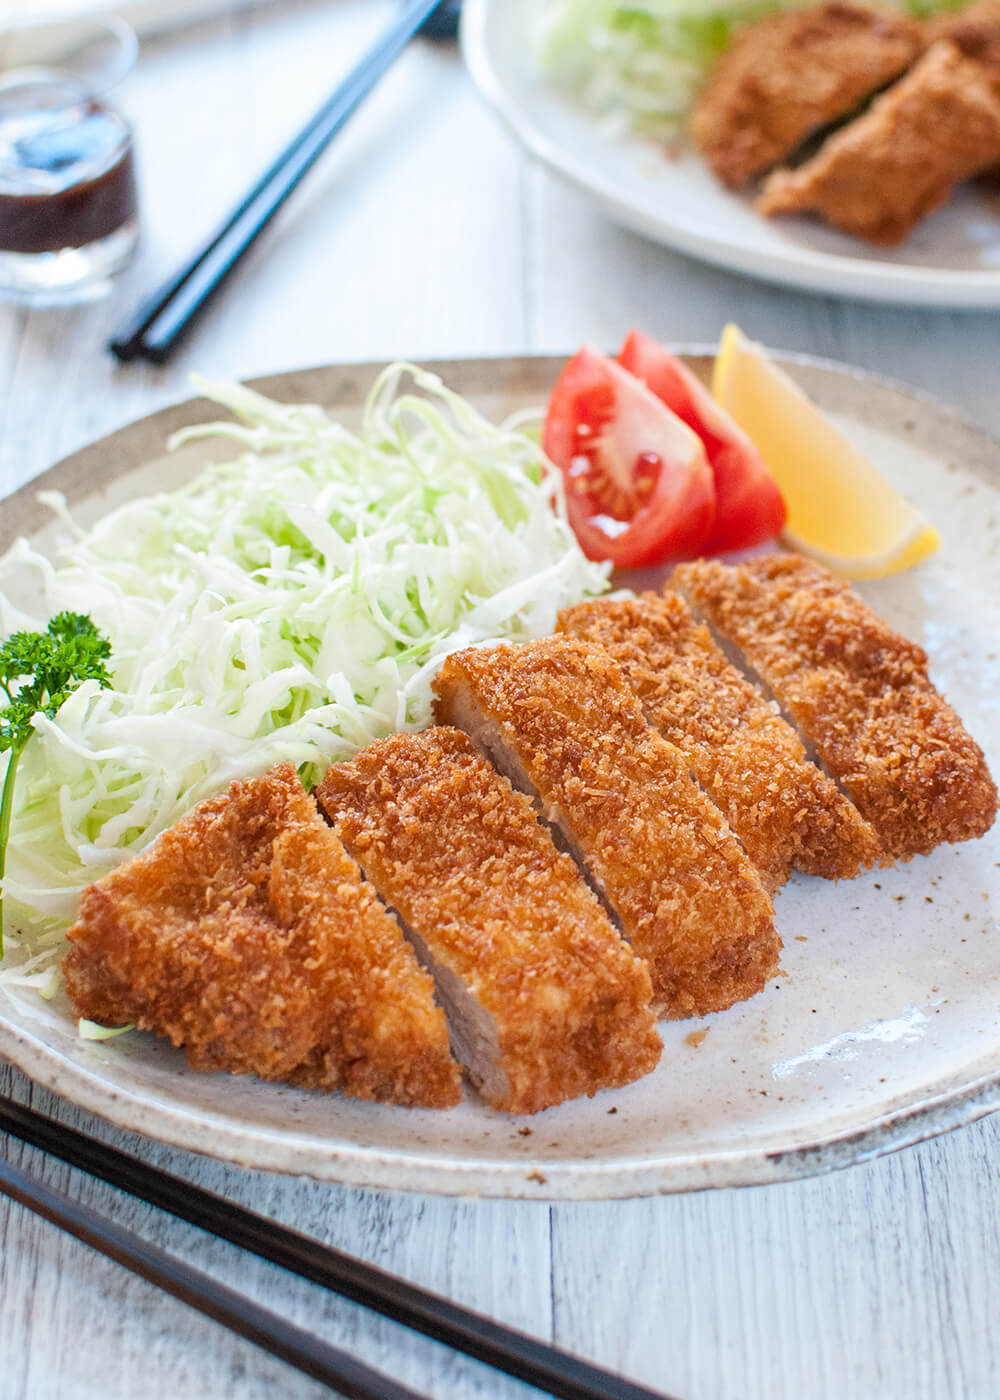 Tonkatsu (Japanese Pork Schnitzel) | RecipeTin Japan